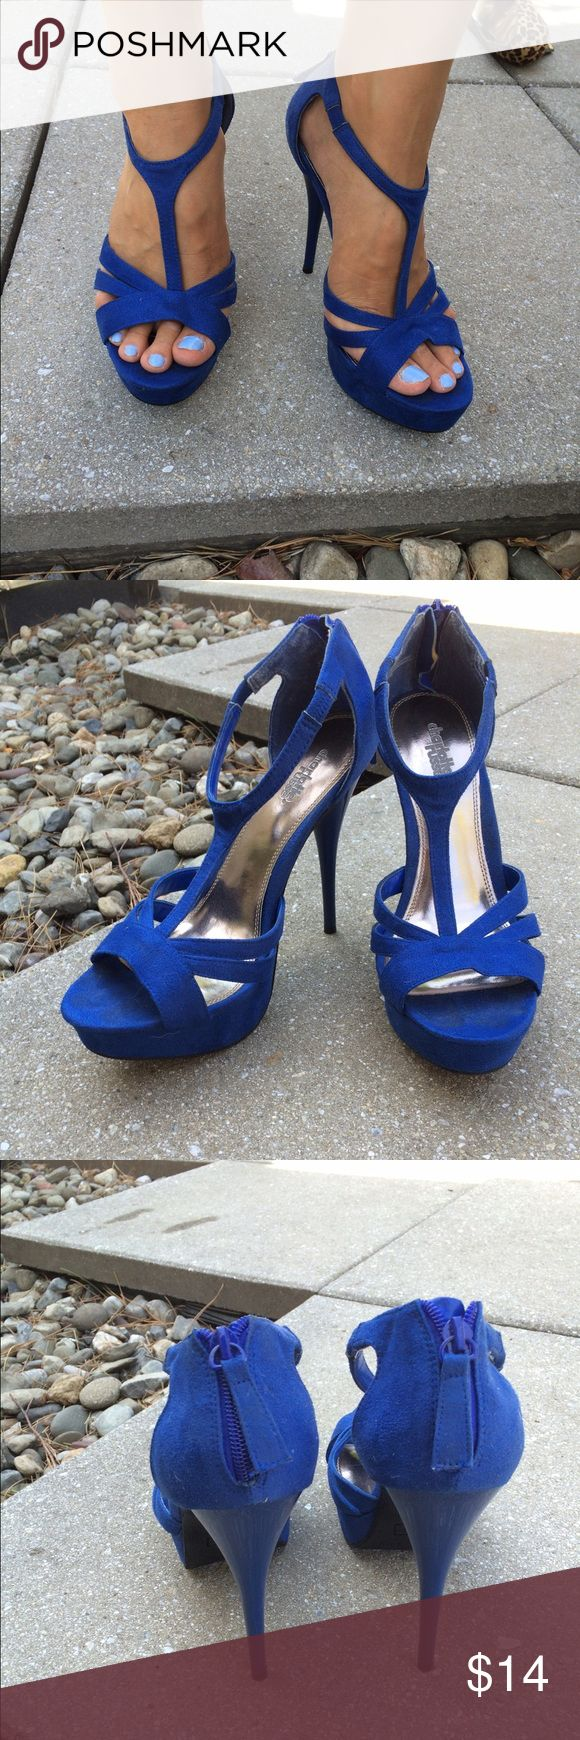 "Royal Blue Heels Royal Blue heels from Charlotte Russe. The heel is 5"" with a 1"" platform which makes super comfy to walk in while remaining cute. Good condition, only worn a few times! Charlotte Russe Shoes Heels"